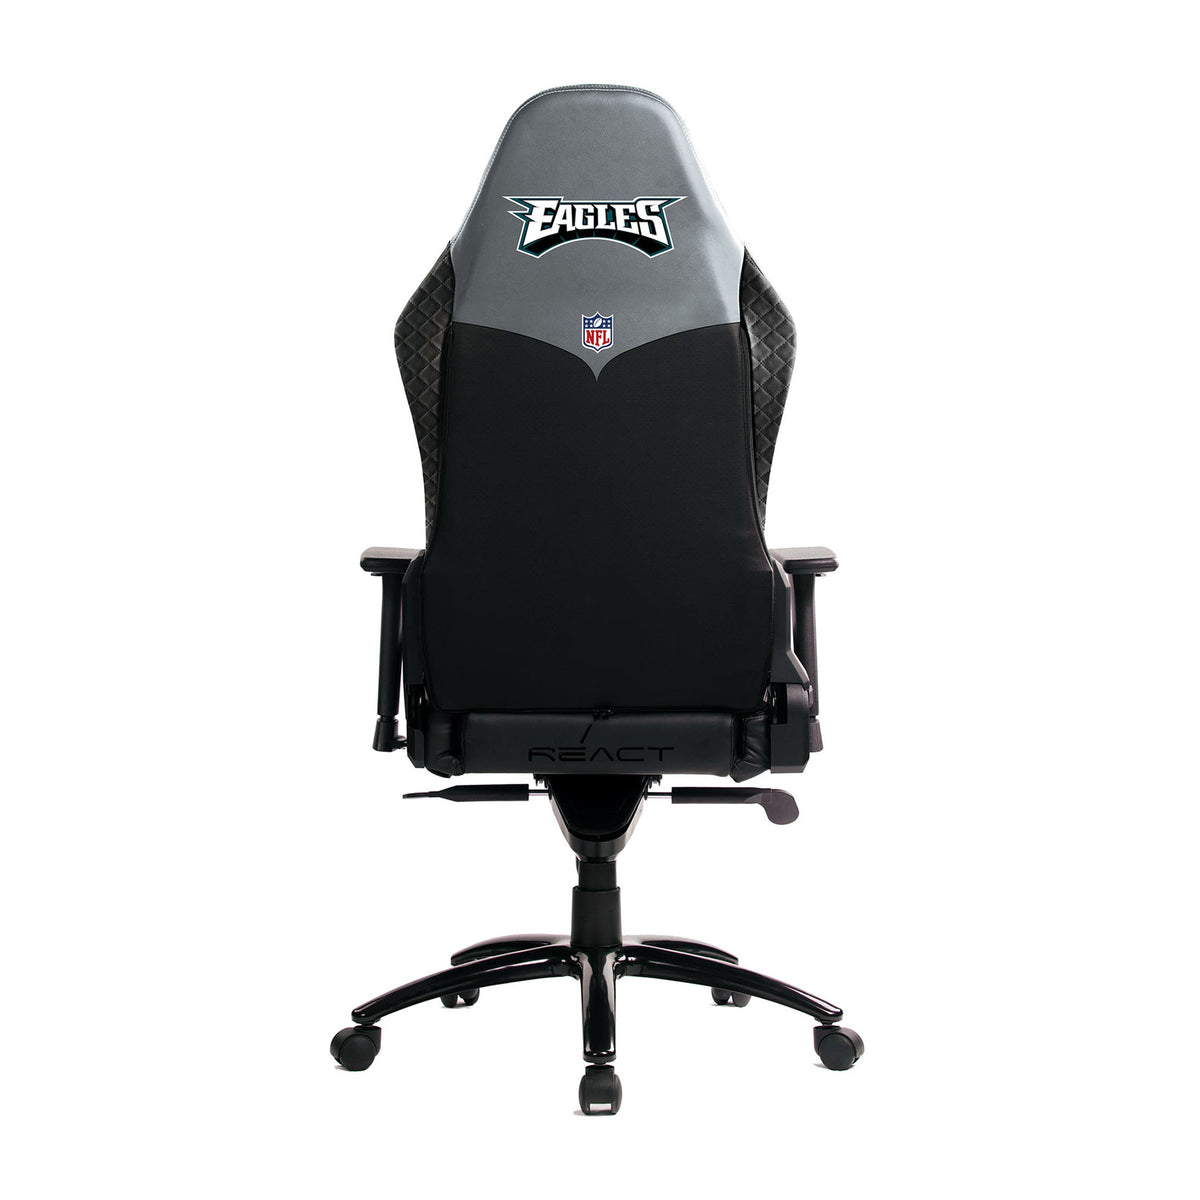 Philadelphia Eagles Pro Series Gaming Chair